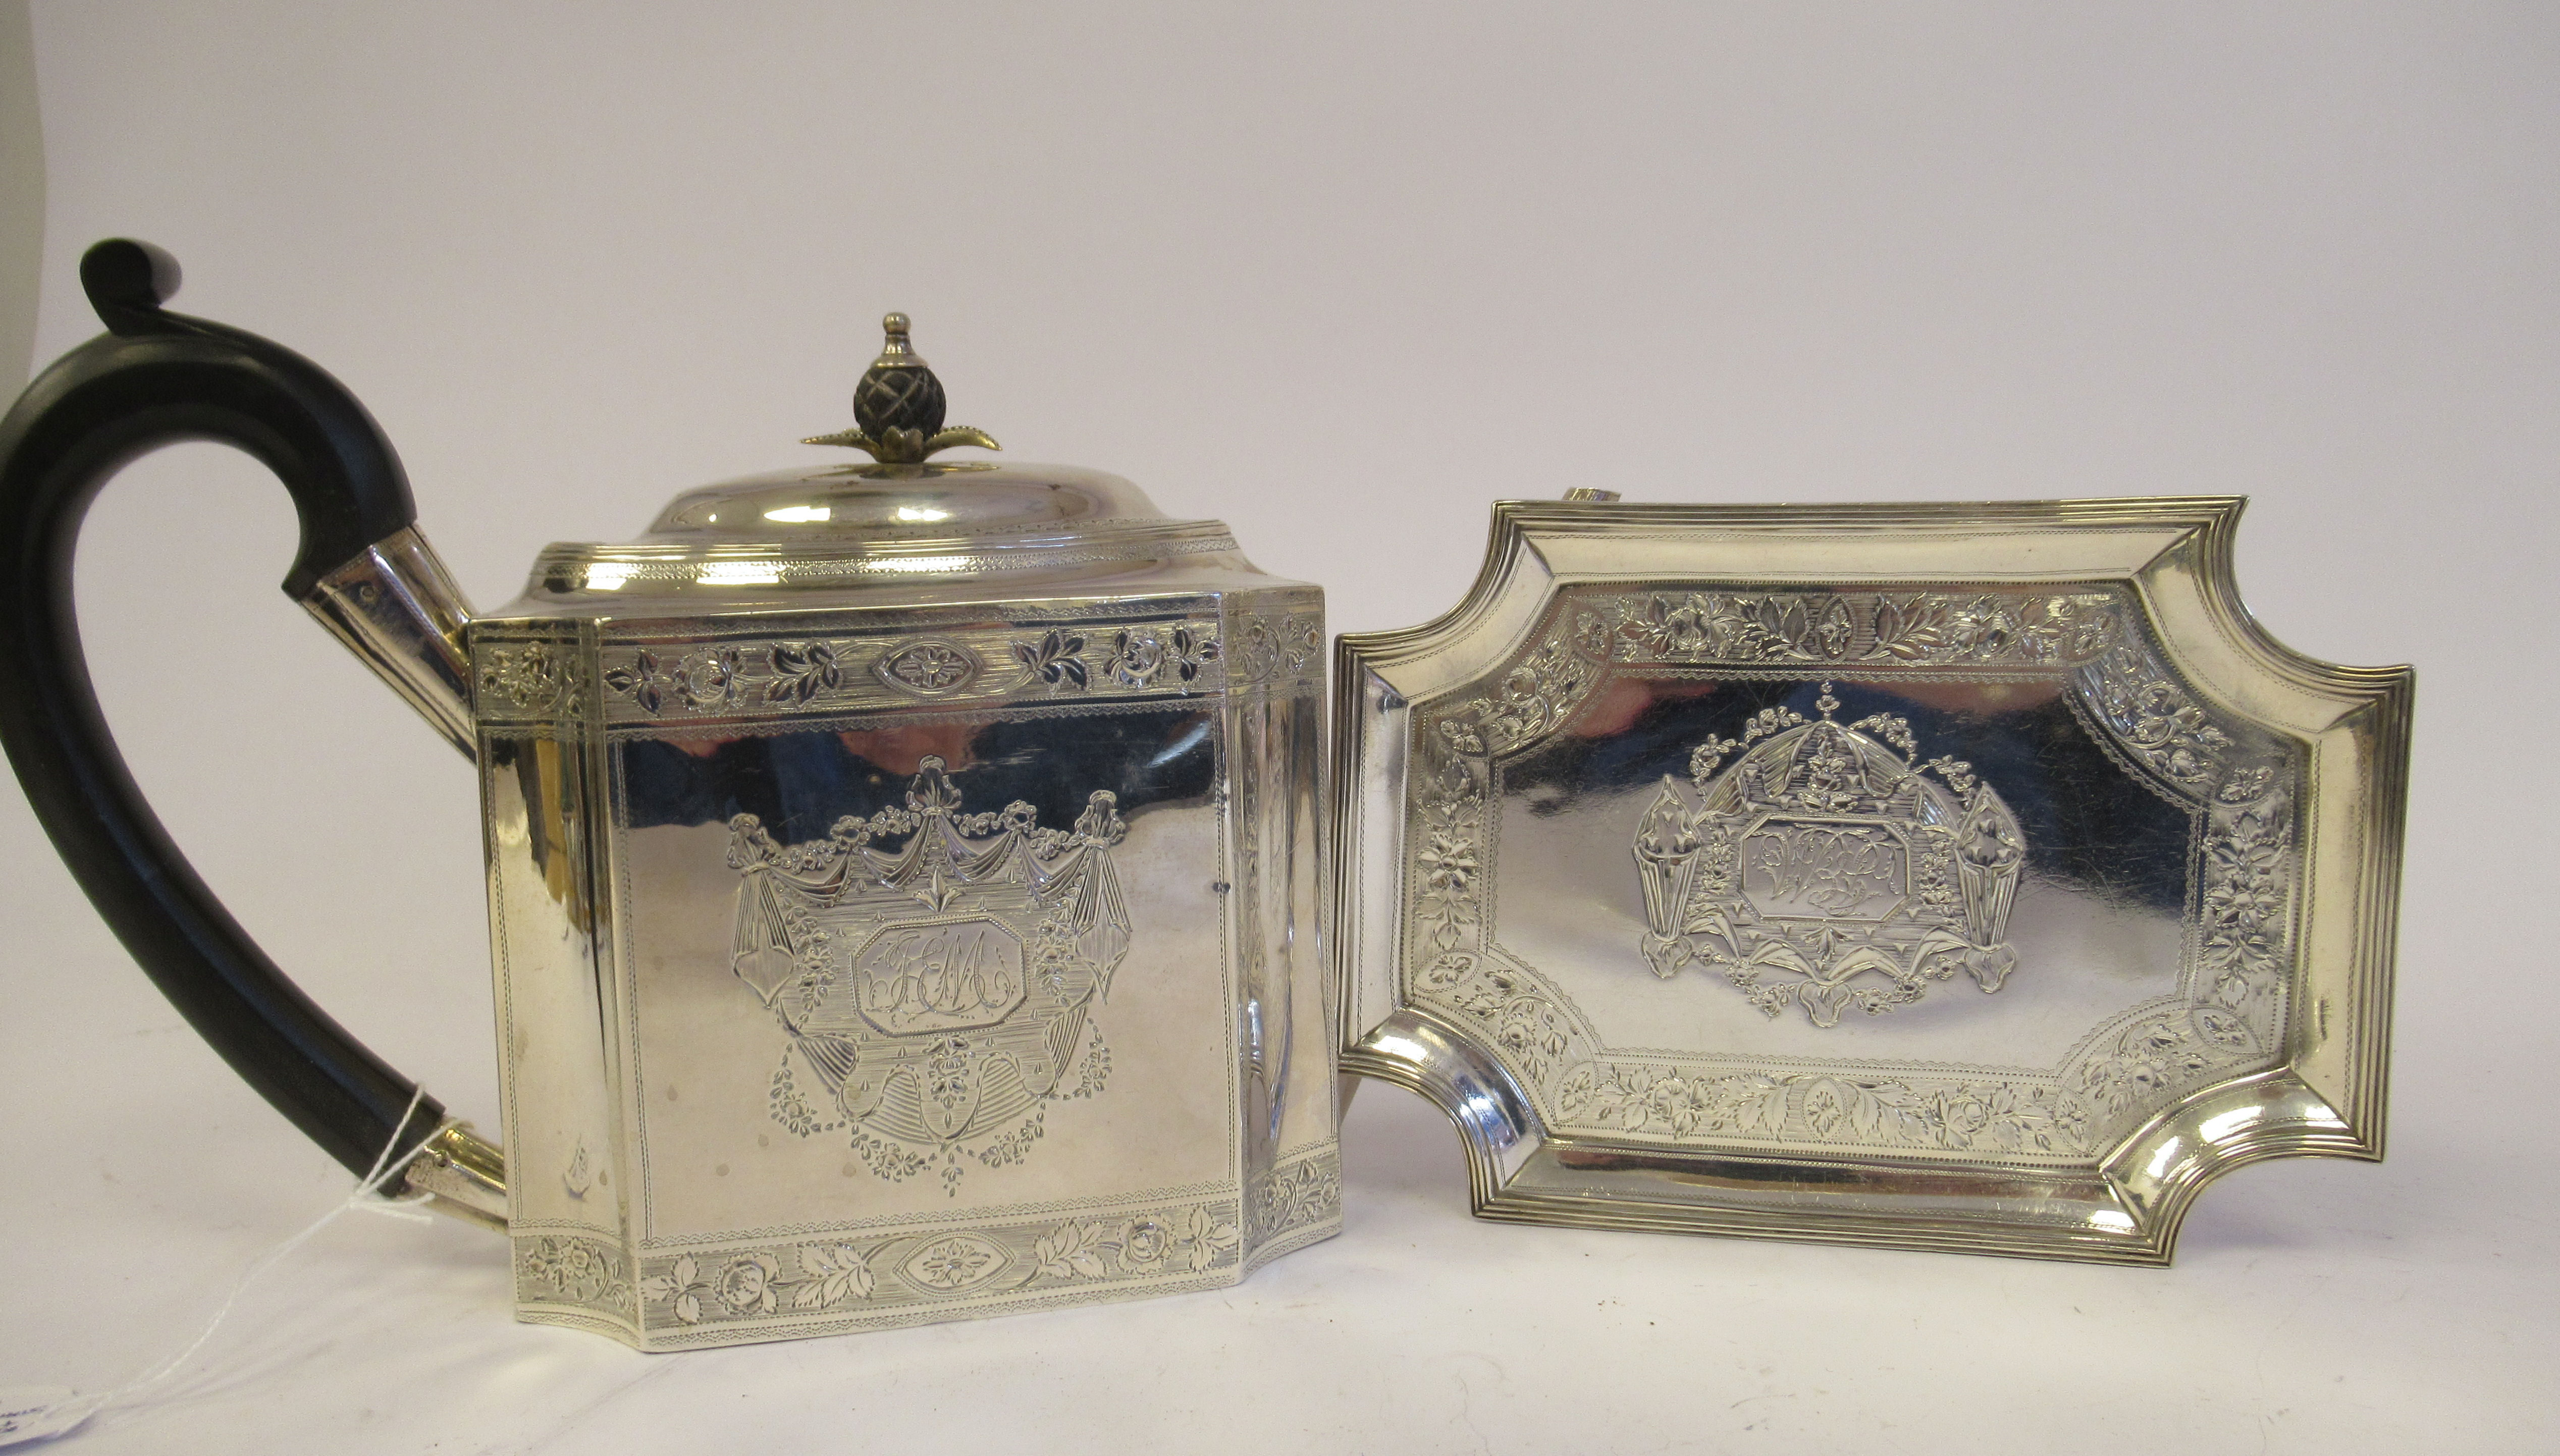 A George III silver teapot of straight sided, incurved box design, having an angled straight, - Image 3 of 9